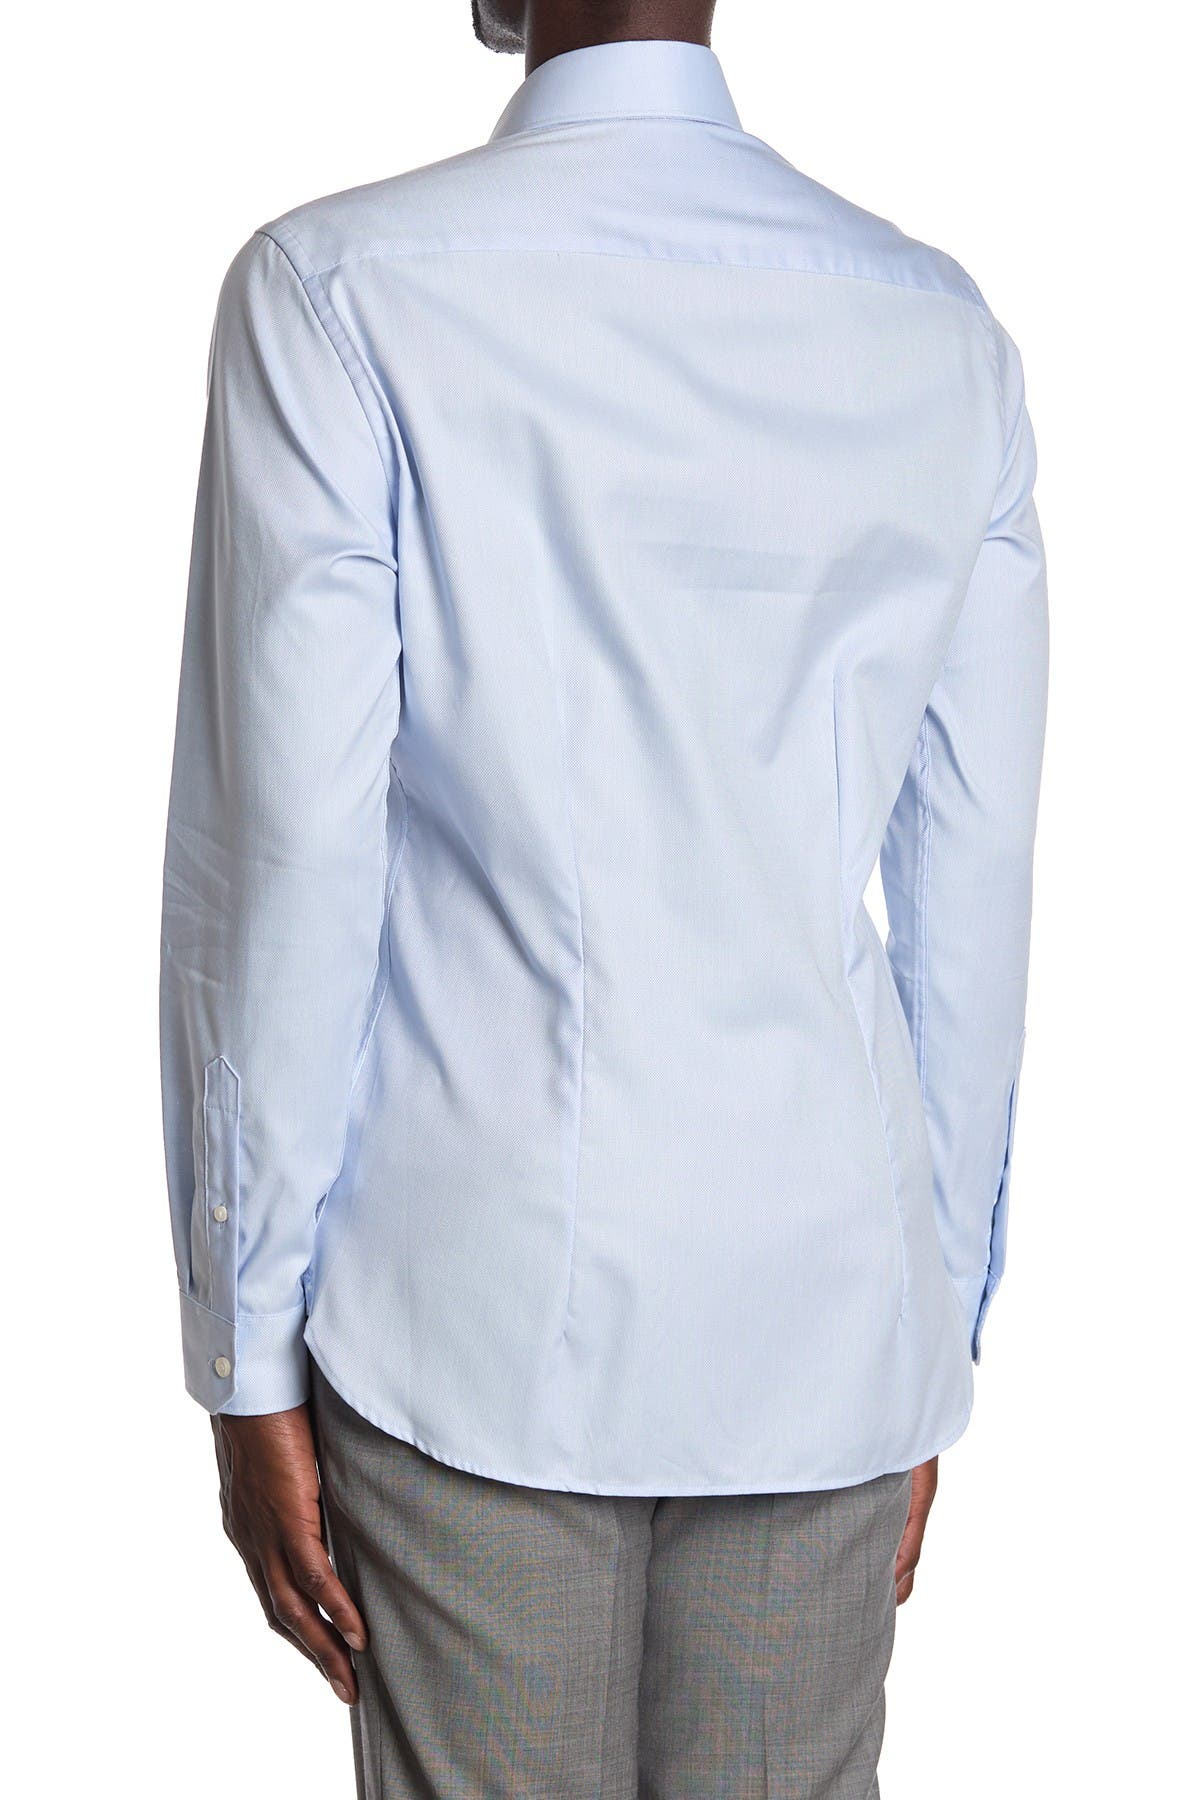 Image of Ted Baker London Oxford Long Sleeve Endurance Fit Shirt